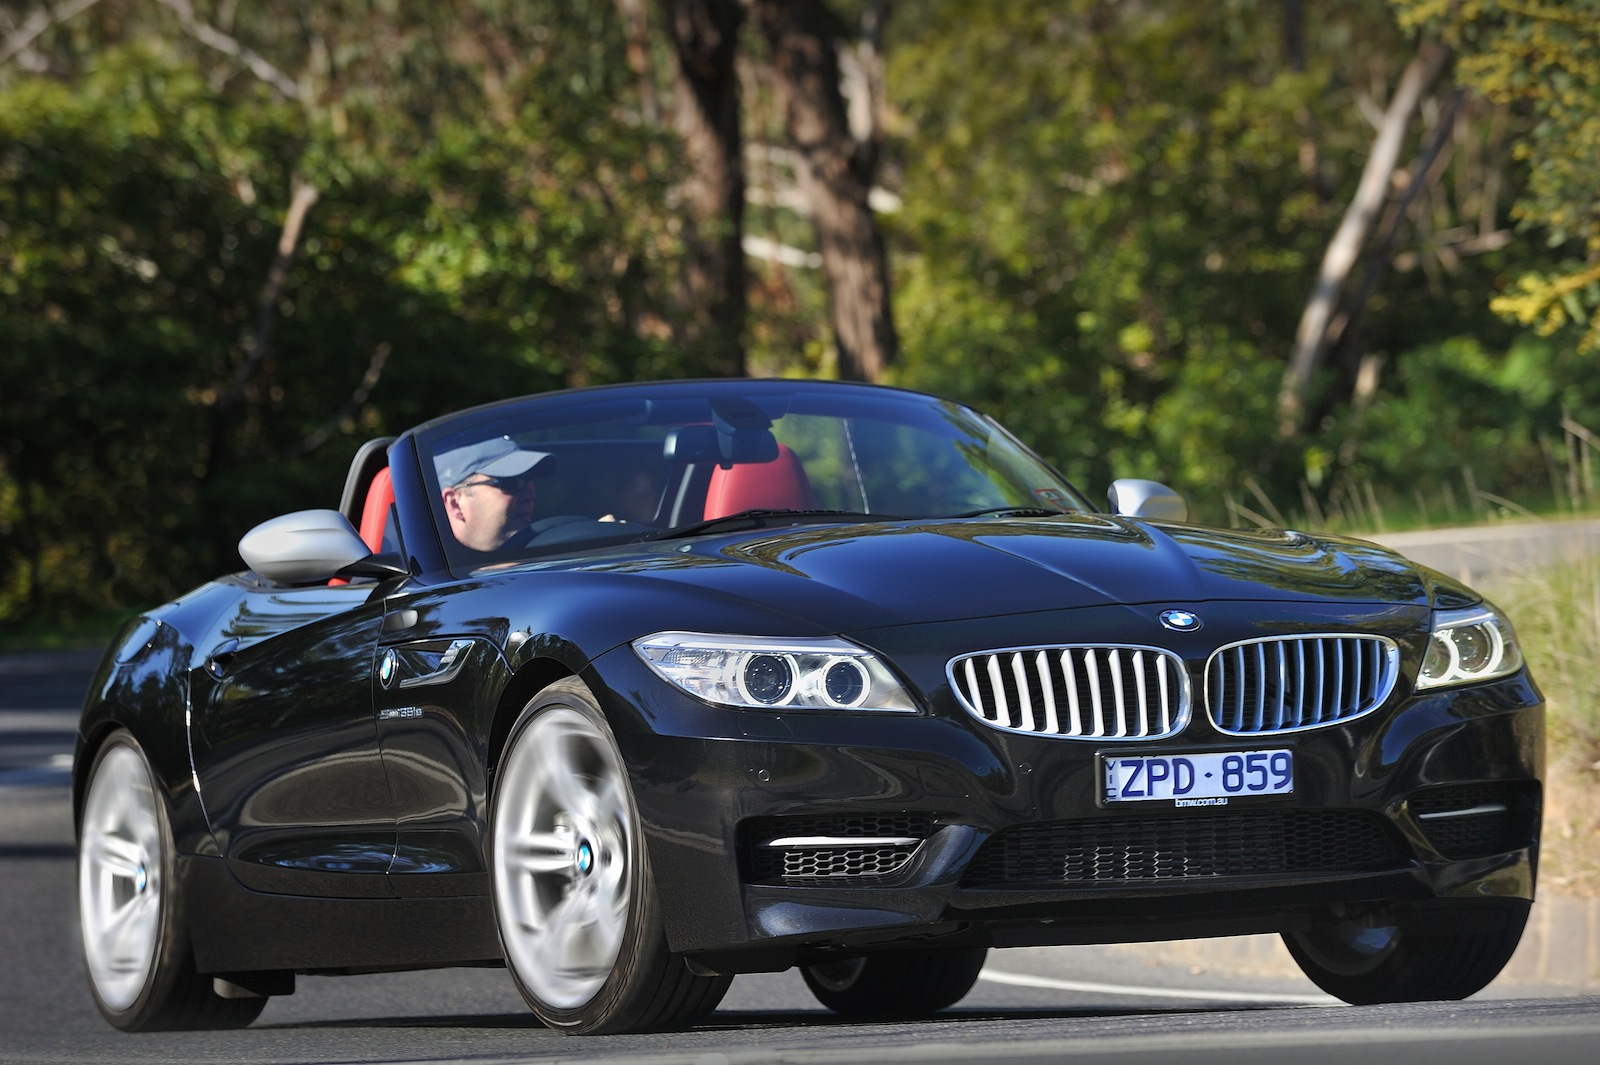 2013 Bmw E89 Z4 Line Up Review By Car Advice Autoevolution